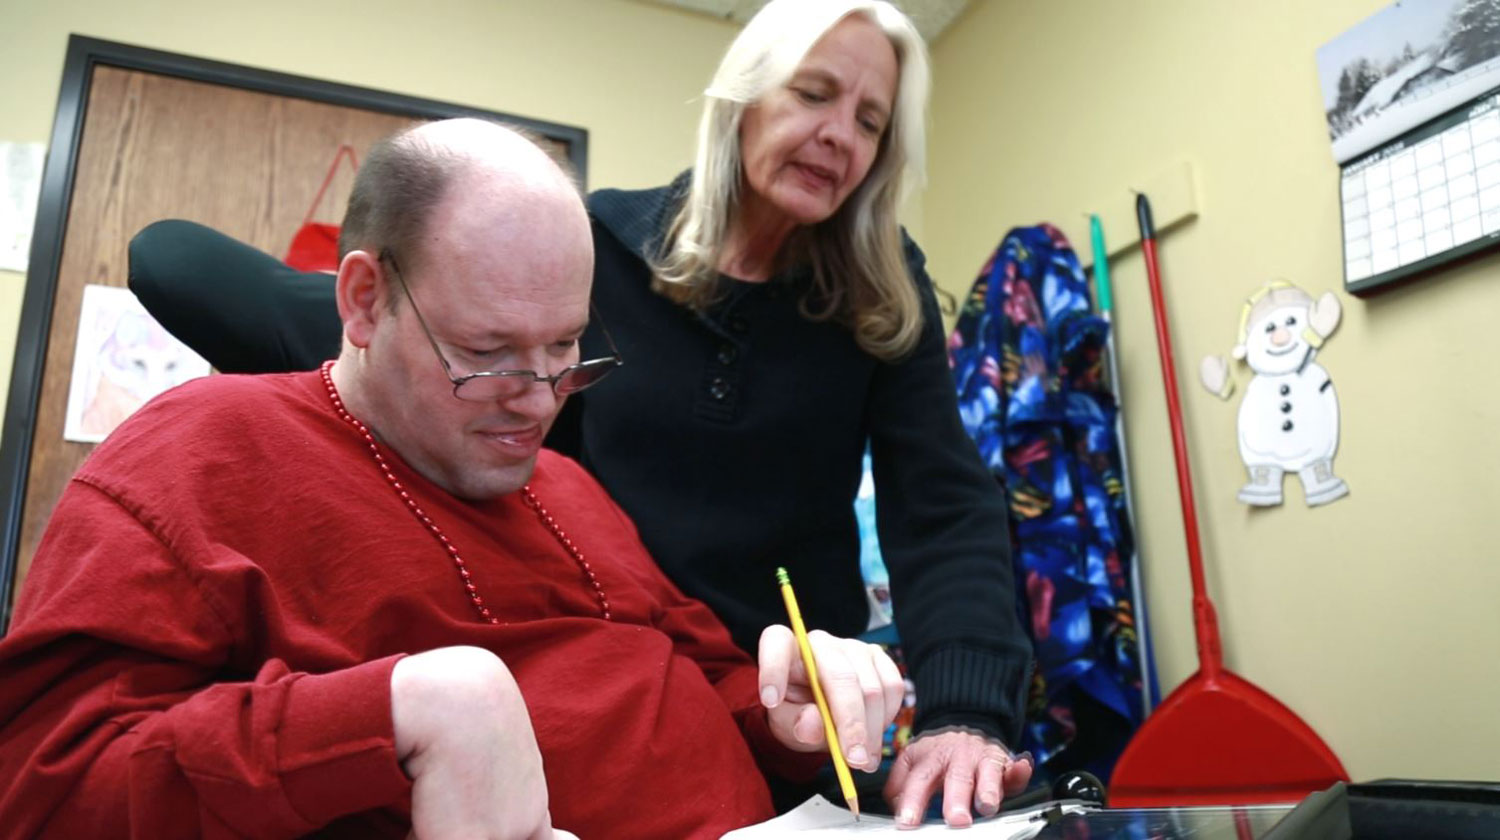 A volunteer holds paper while a PA client writes.